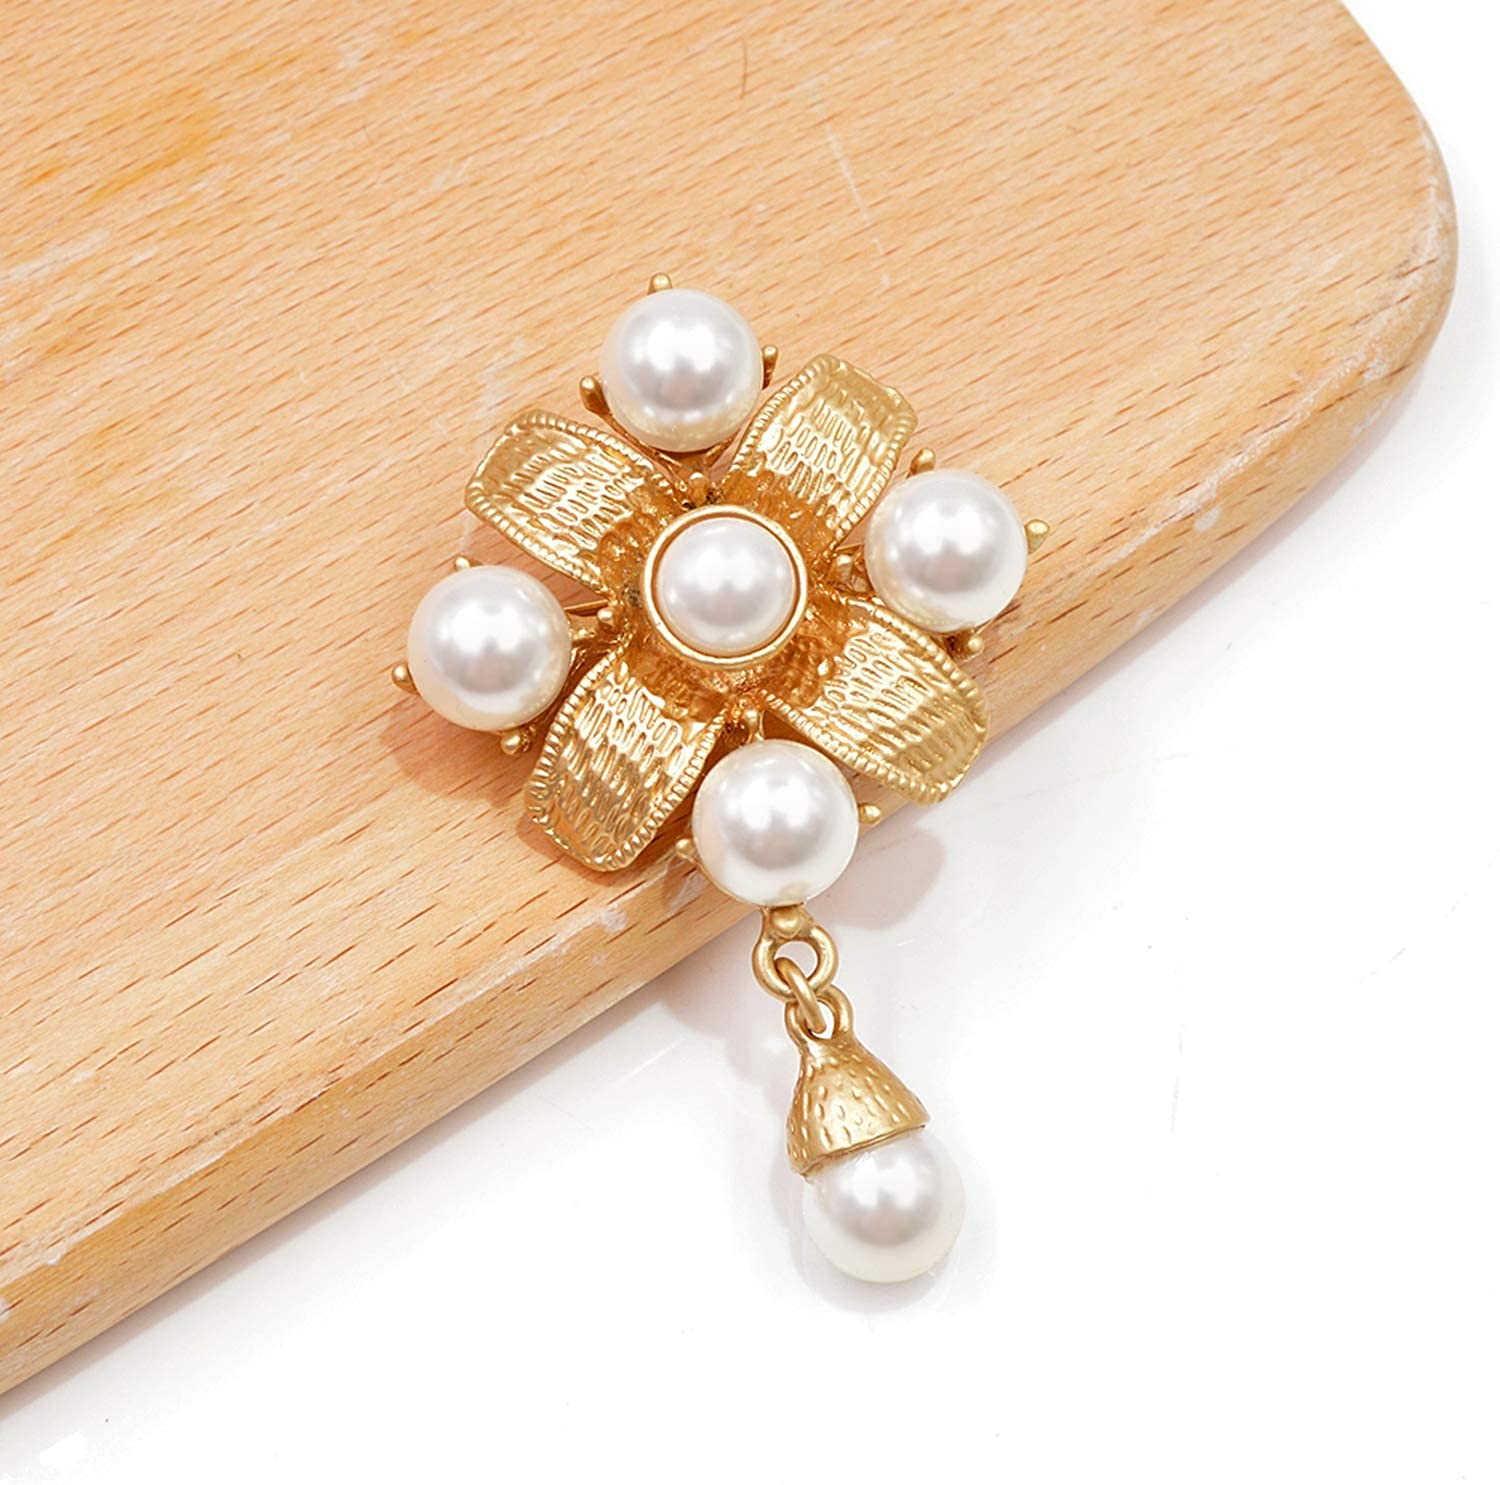 Lanng Gold Color Metal Cross Brooch Pearl Pins Baroque Style Vintage Fashion Jewelry Antique Elegant Accessories Good Gift